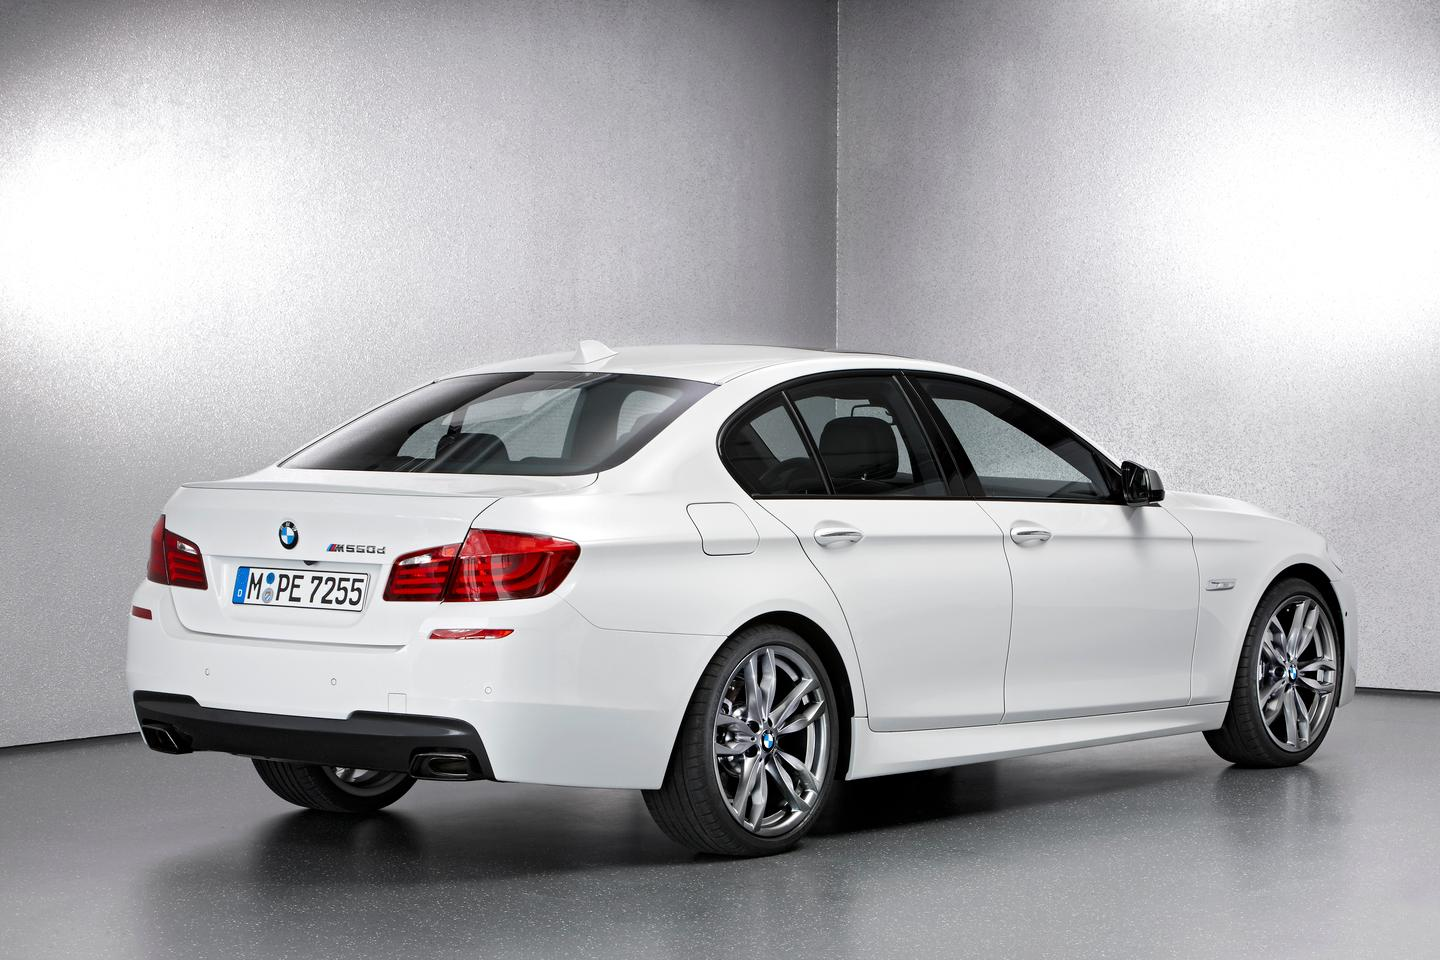 The BMW M550d xDrive